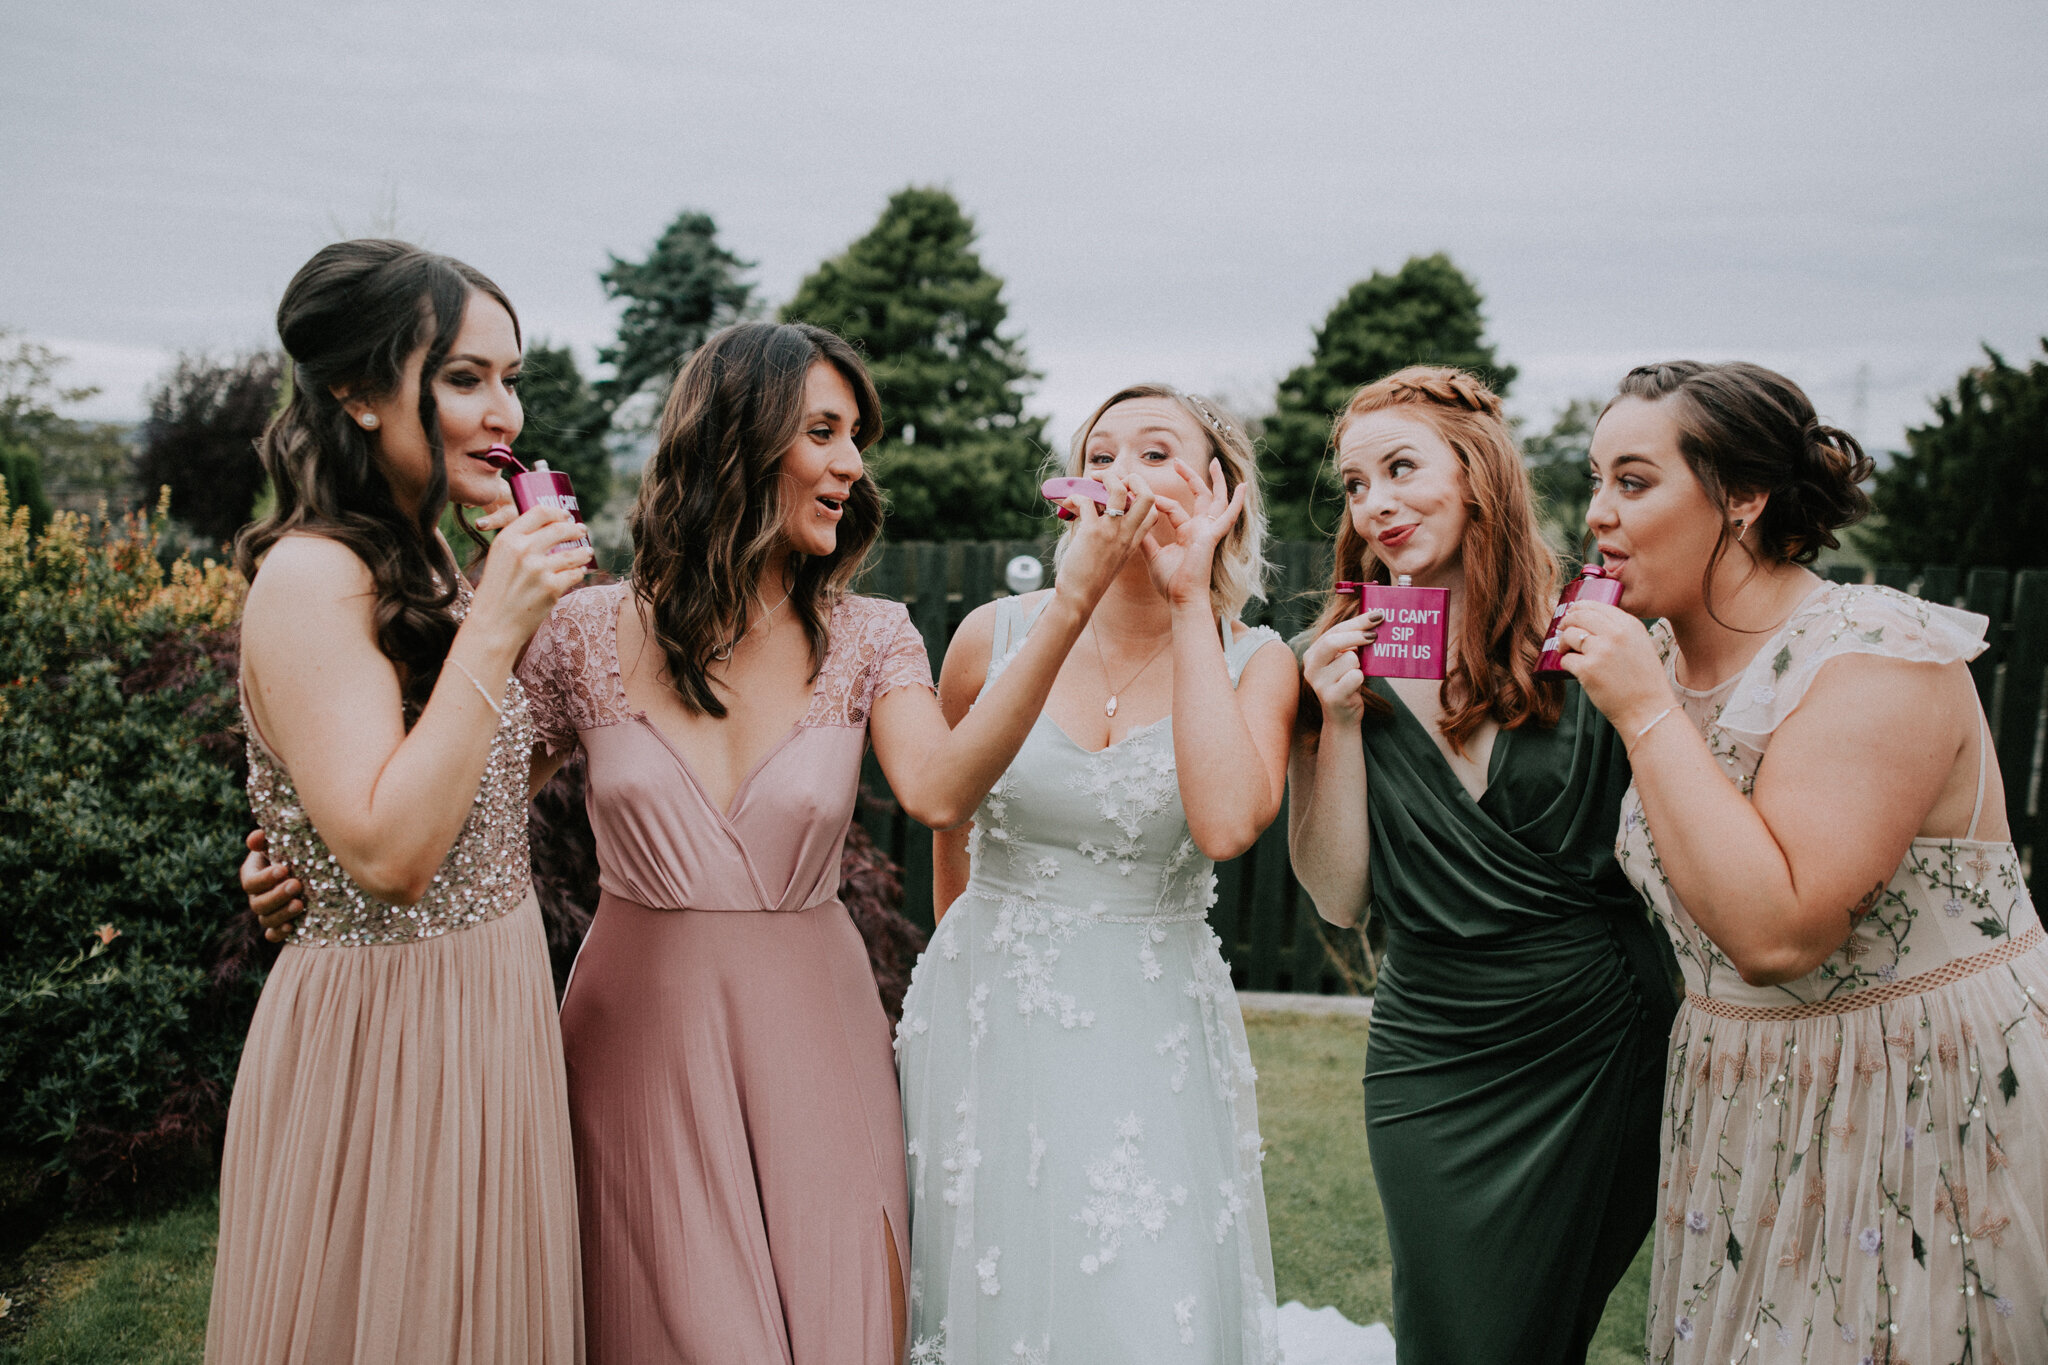 The bridal party is having a fun during the bridal preparation